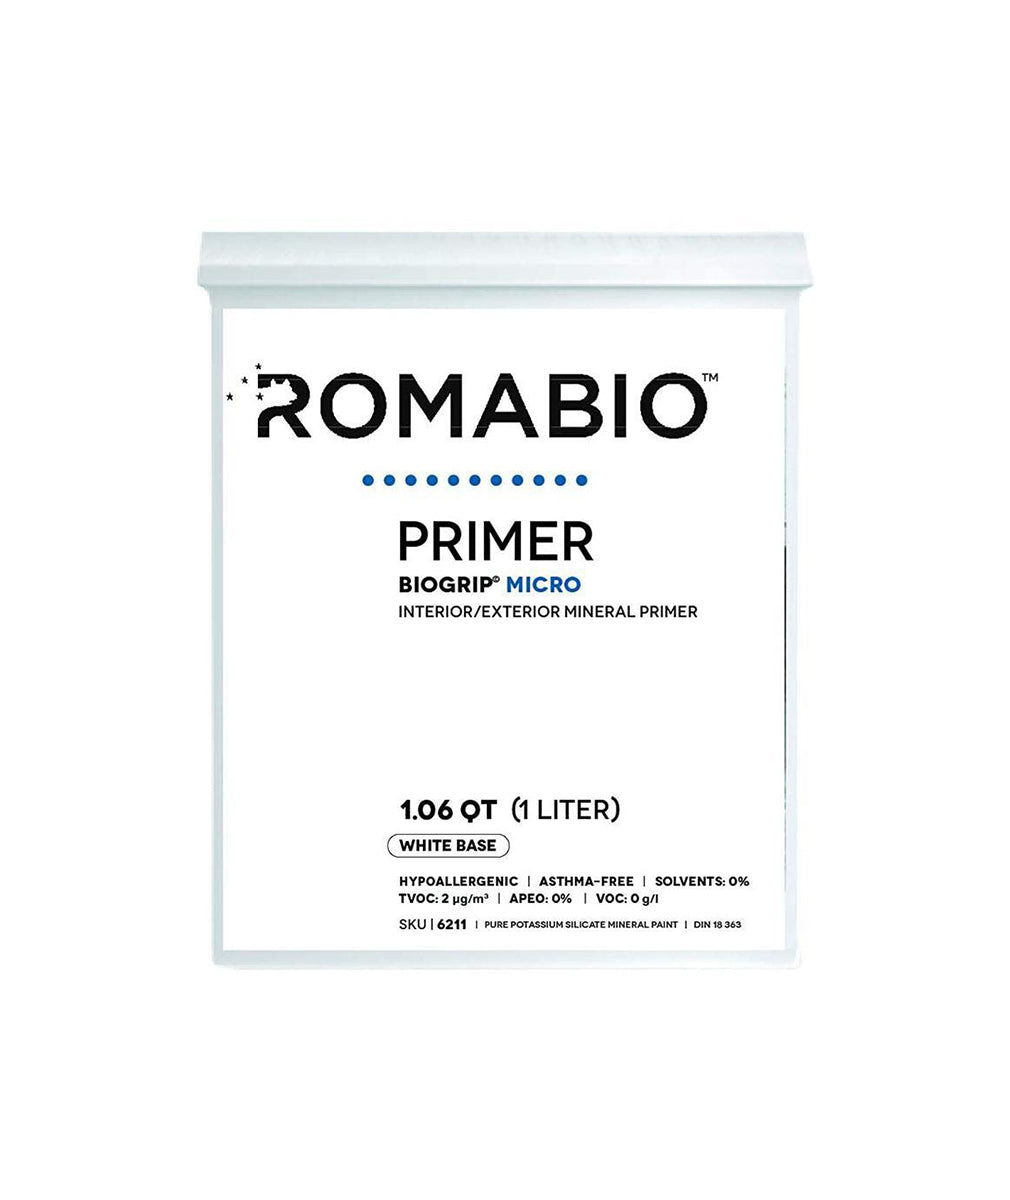 ROMABIO Biogrip Micro Primer available at JC Licht in Chicago, IL.